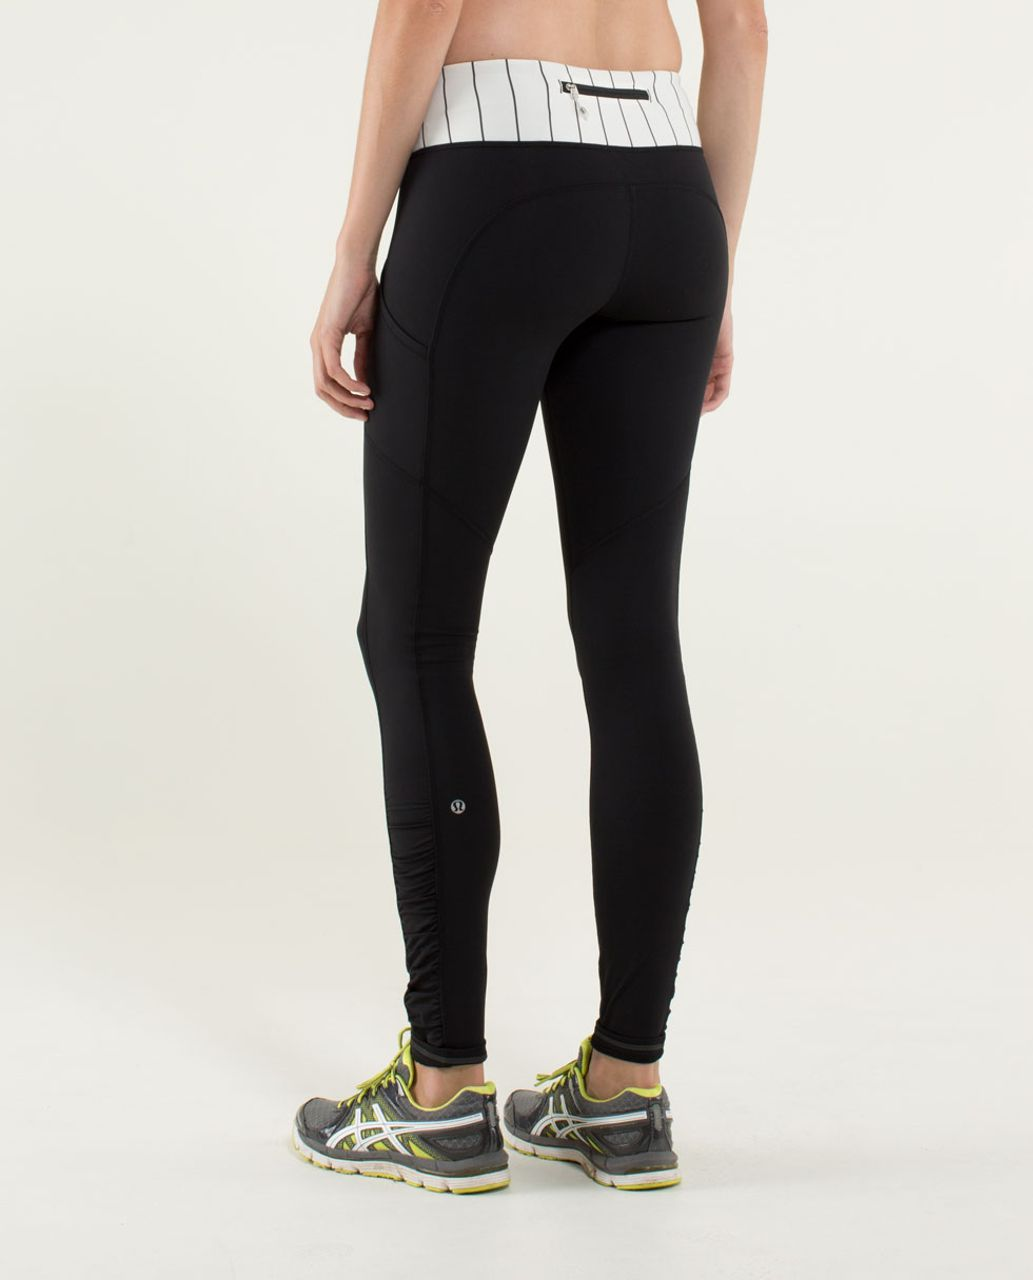 Lululemon Speed Tight *Cozy - Black / Slalom Stripe Angel Wing